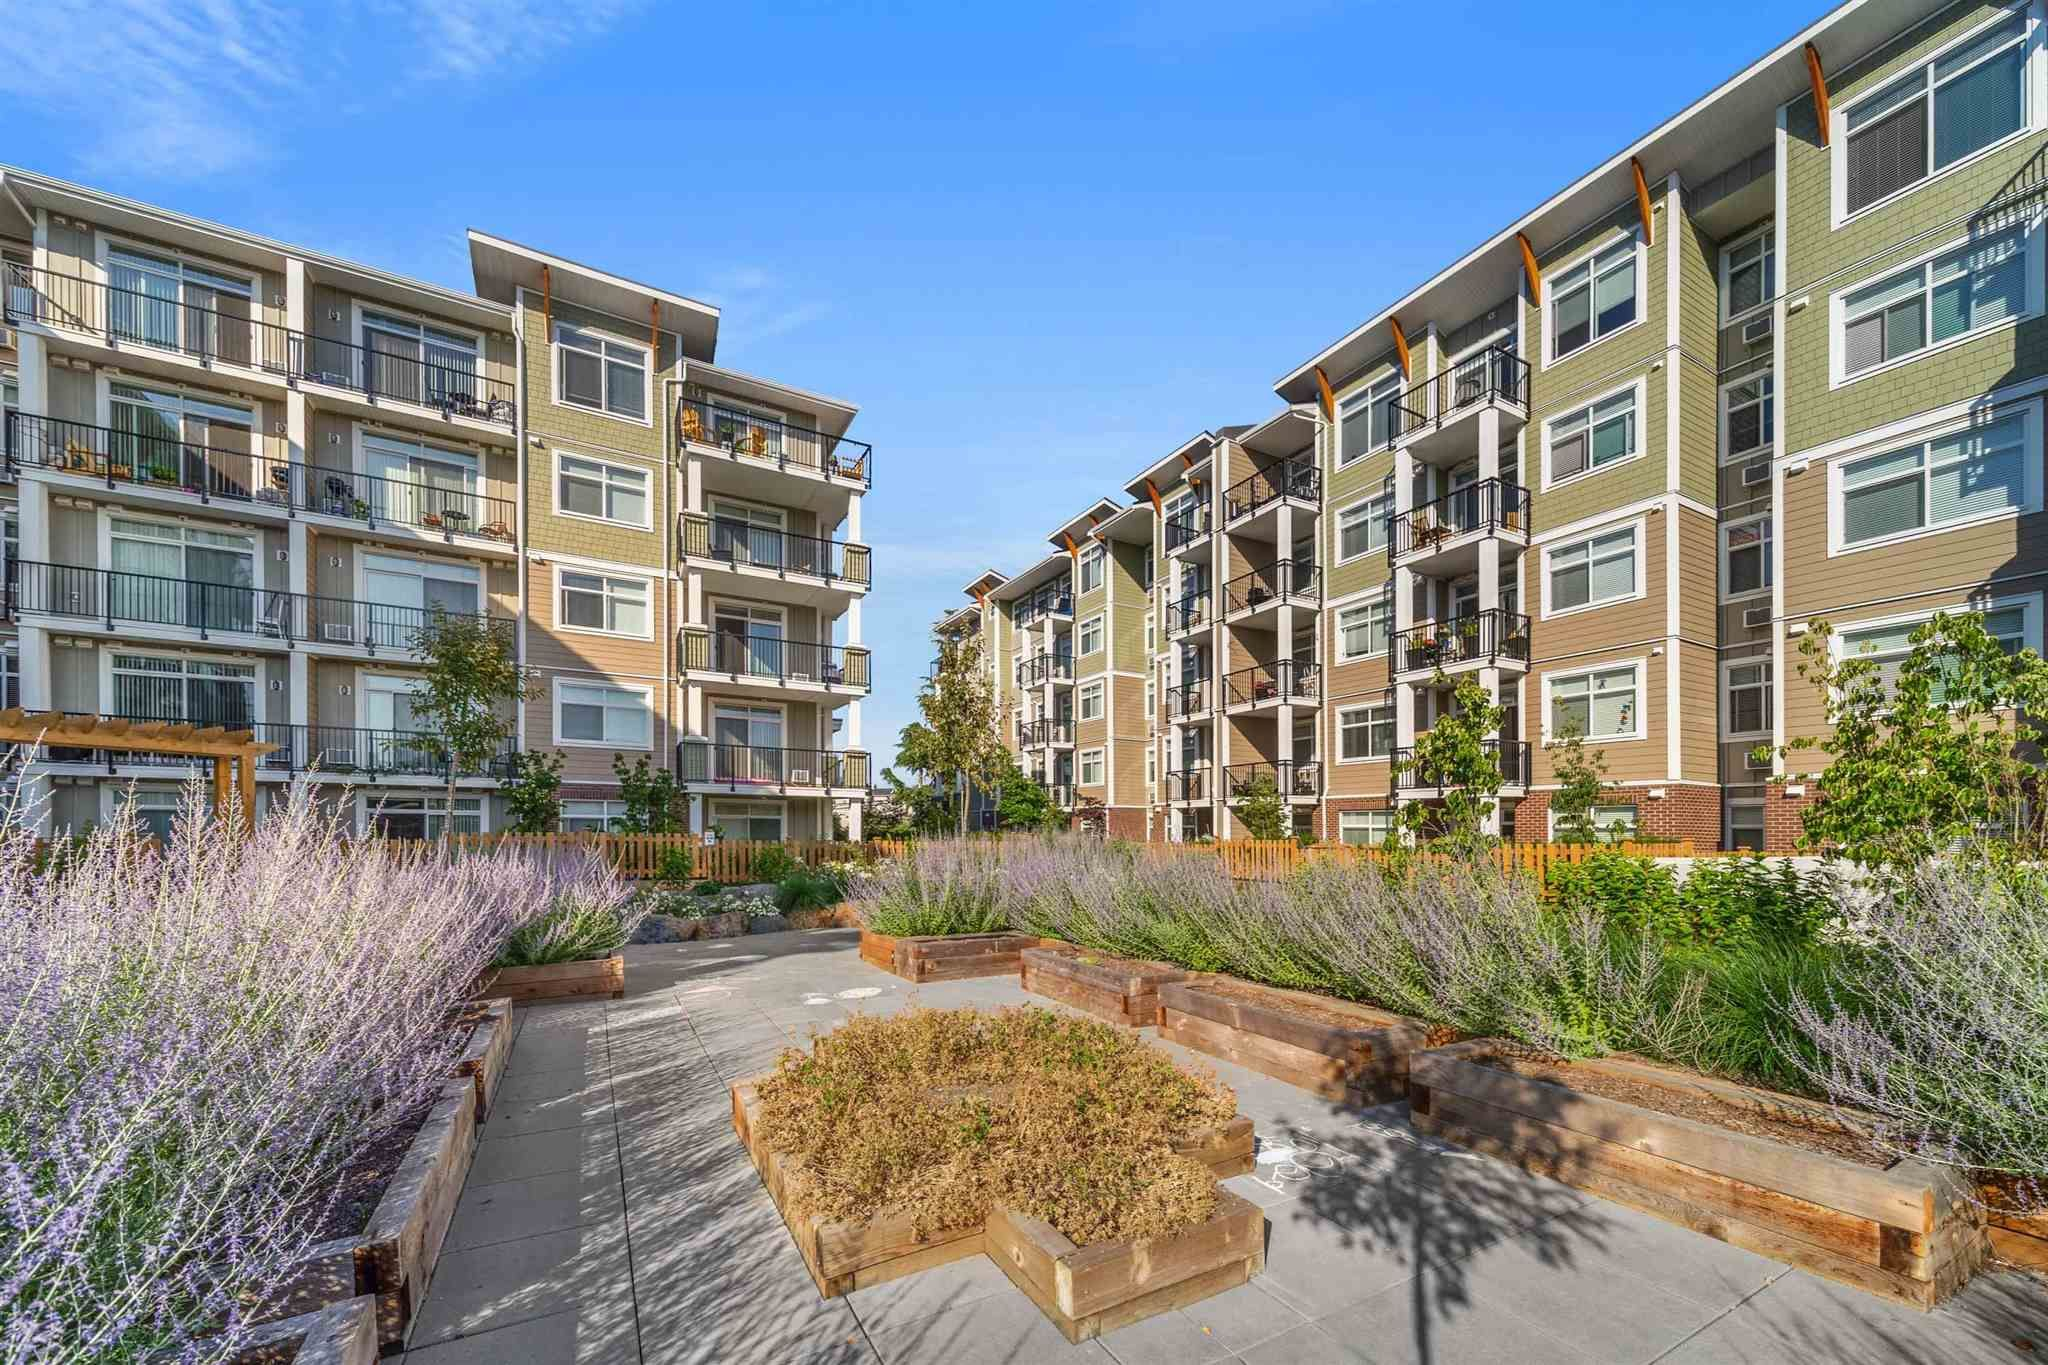 """Main Photo: 215 20696 EASTLEIGH Crescent in Langley: Langley City Condo for sale in """"The Georgia"""" : MLS®# R2598741"""